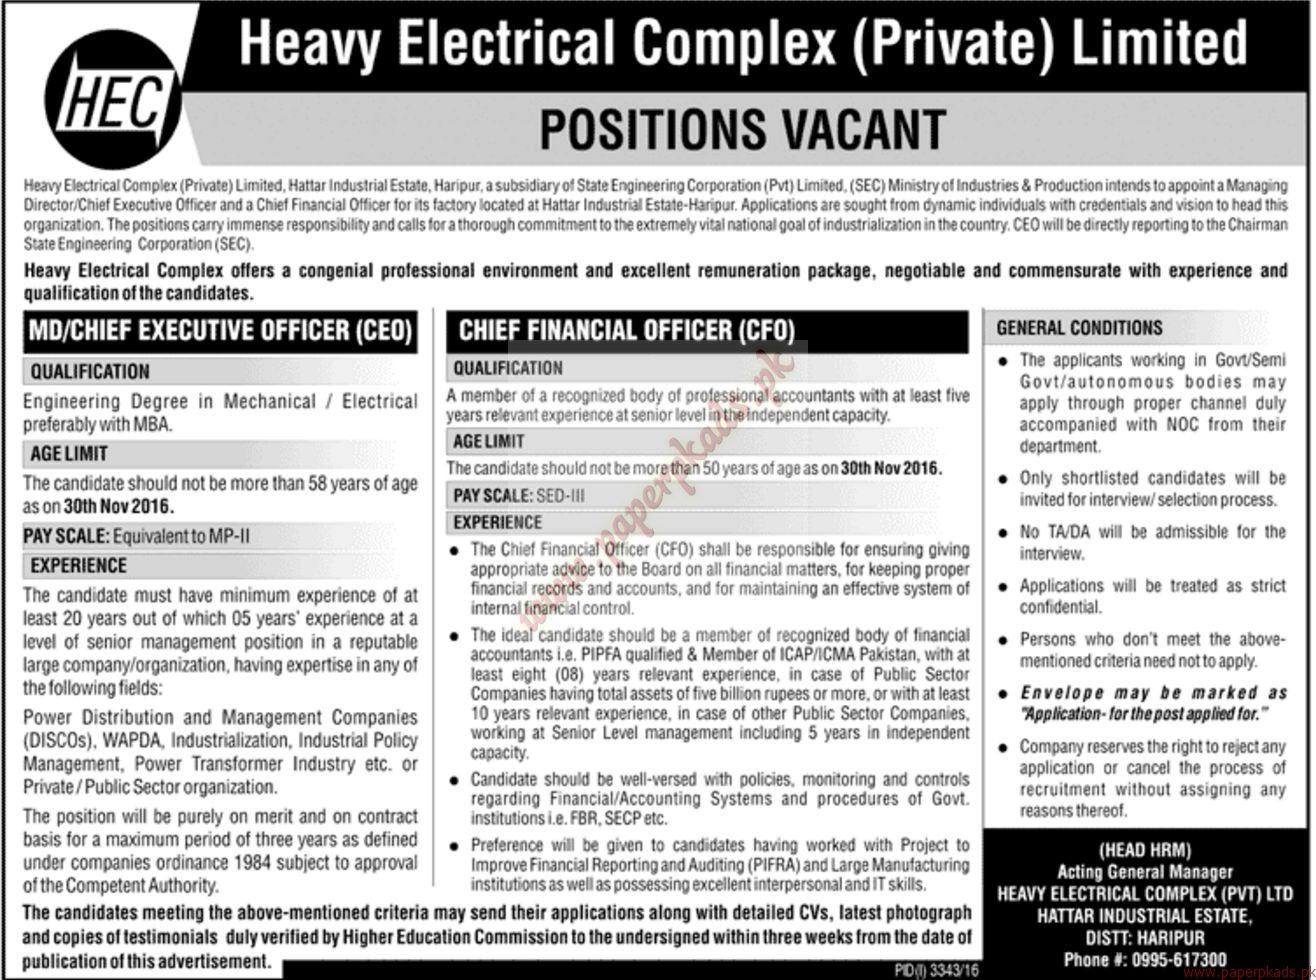 Heavy Electrical Complex Private Limited Jobs - Jang Jobs ads 01 January 2017